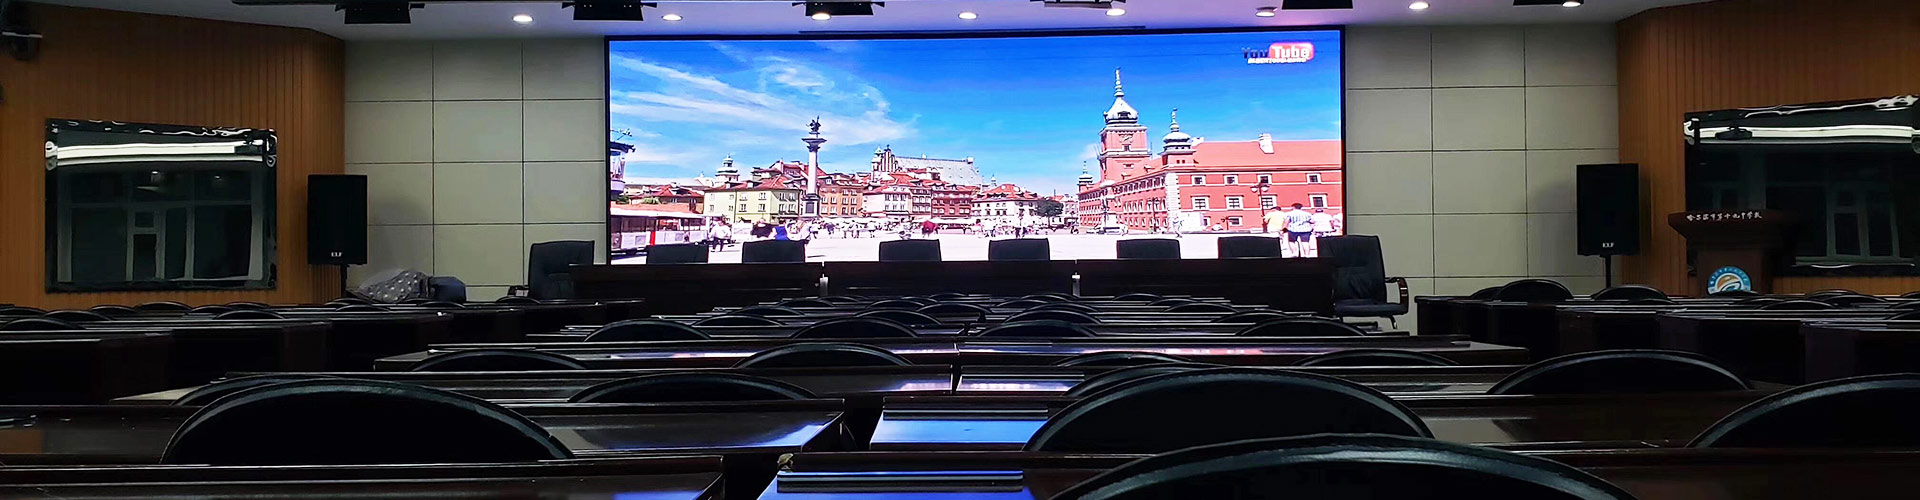 HD LED Screen for Meeting Room